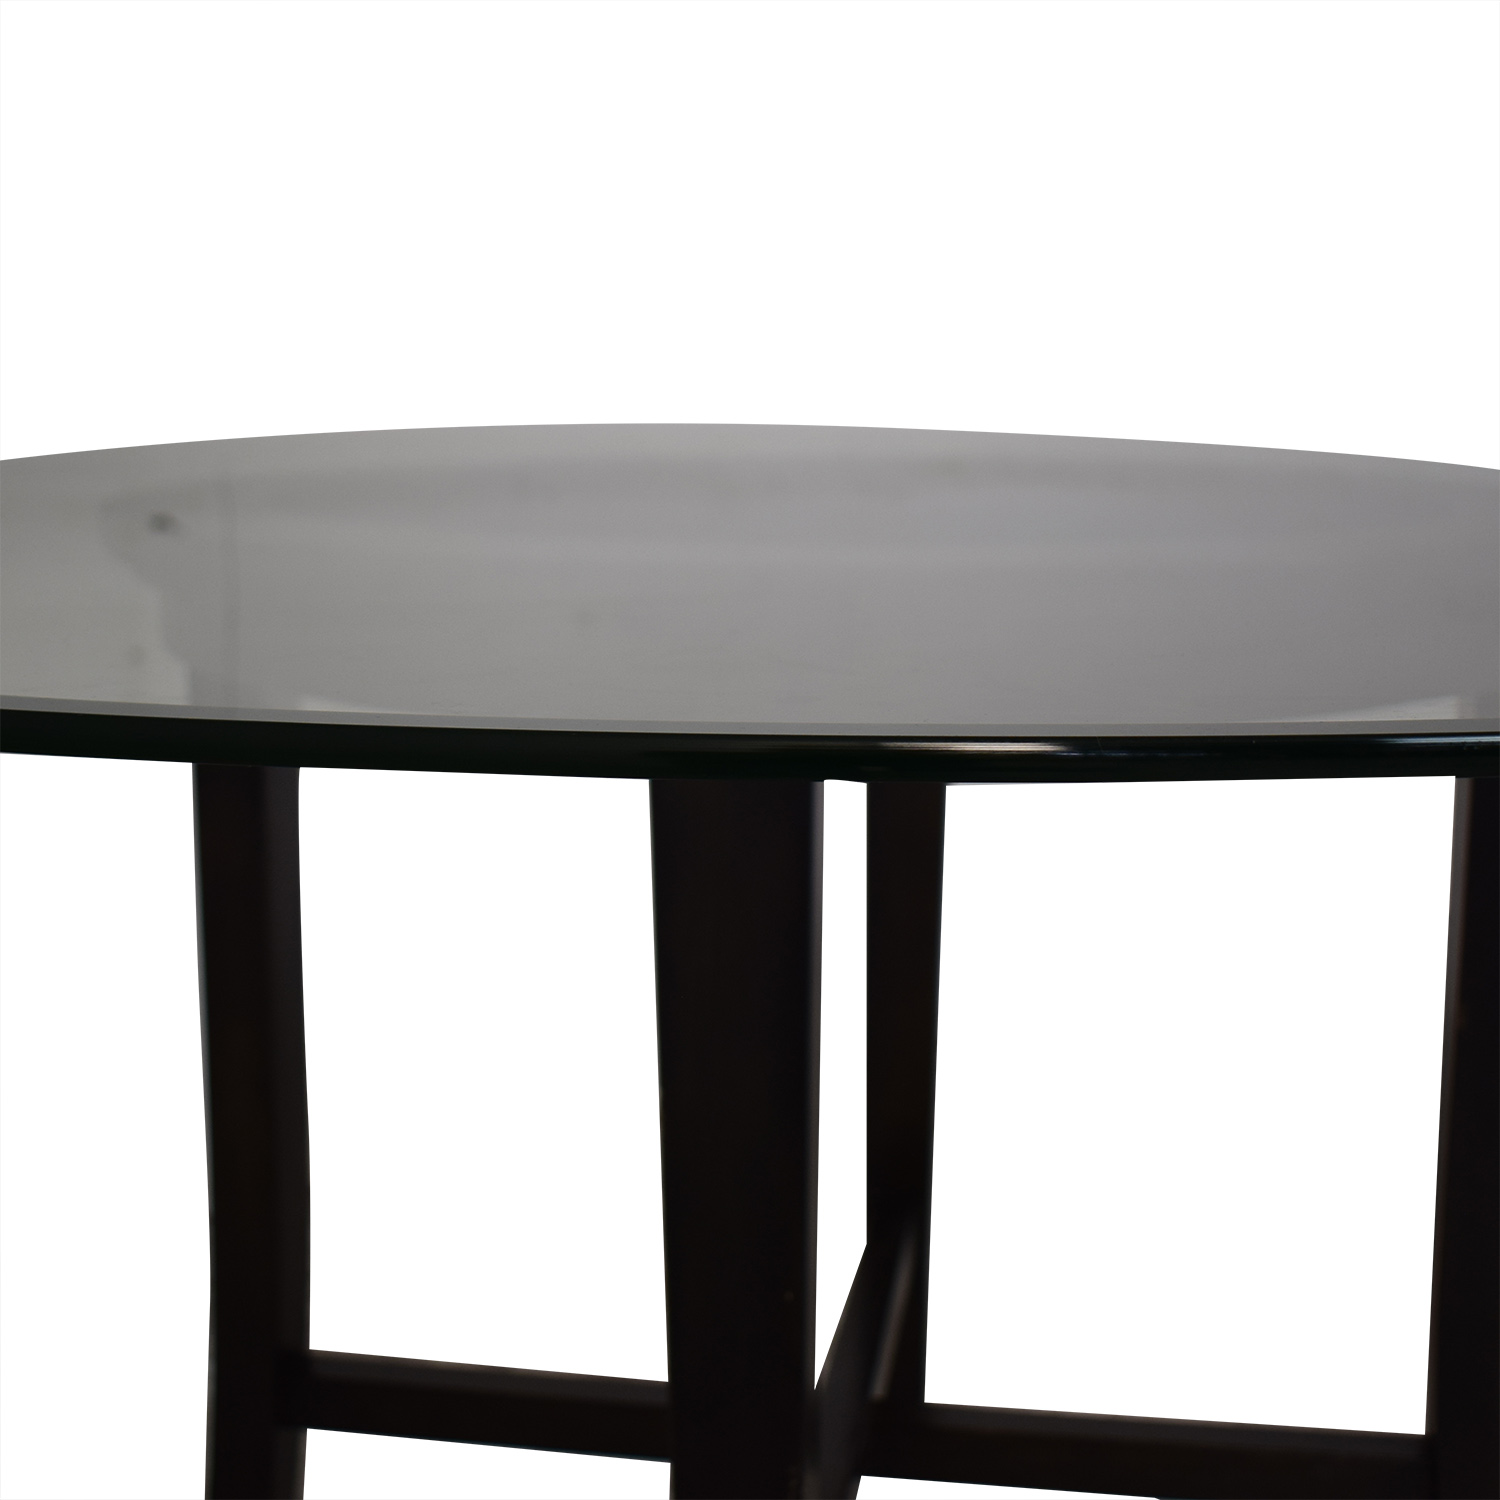 Crate & Barrel Crate & Barrel Halo Ebony Round Dining Table with Glass Top black